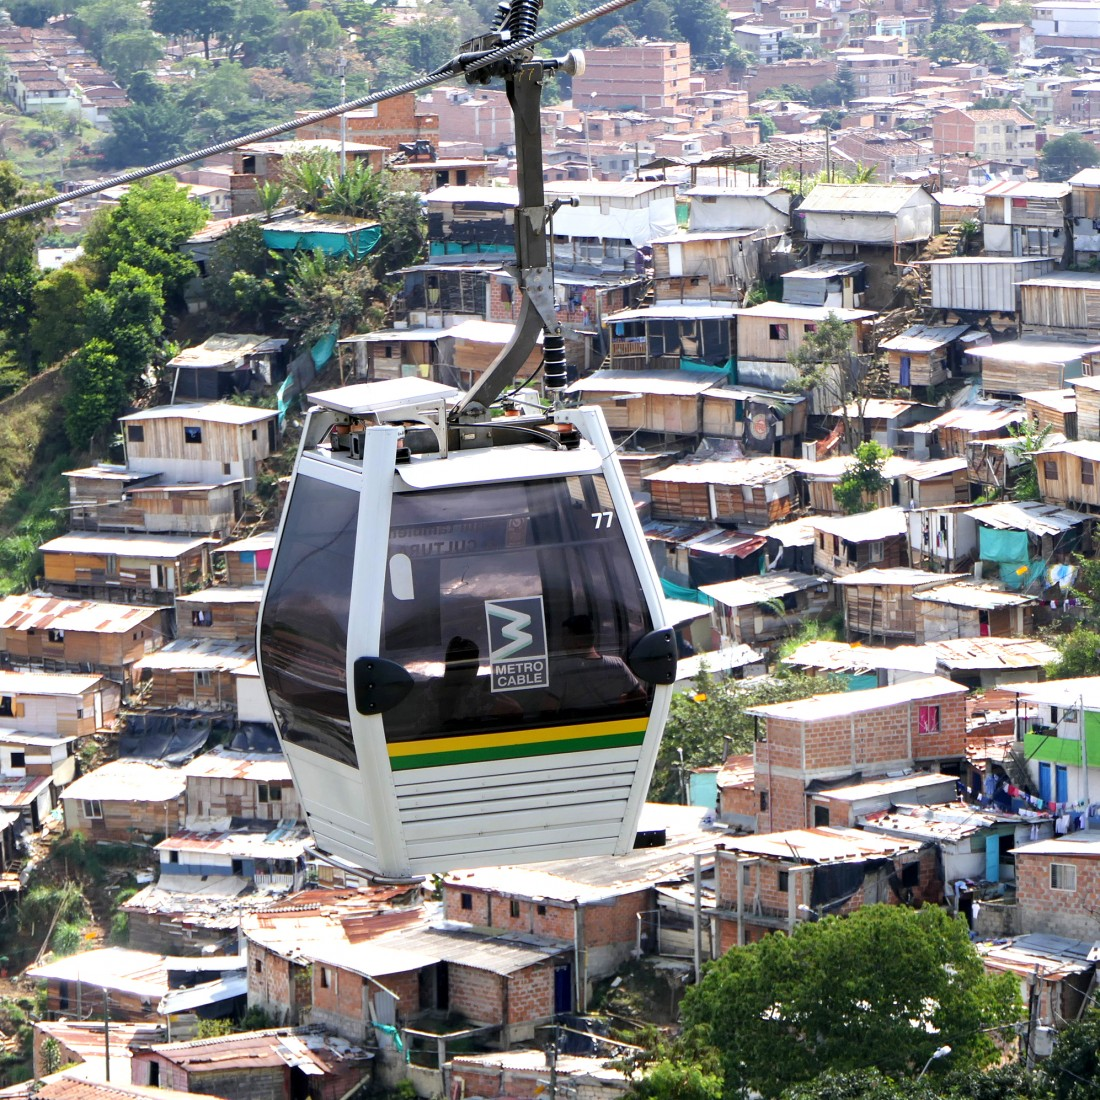 Skycars service the hillside communities - Medellin